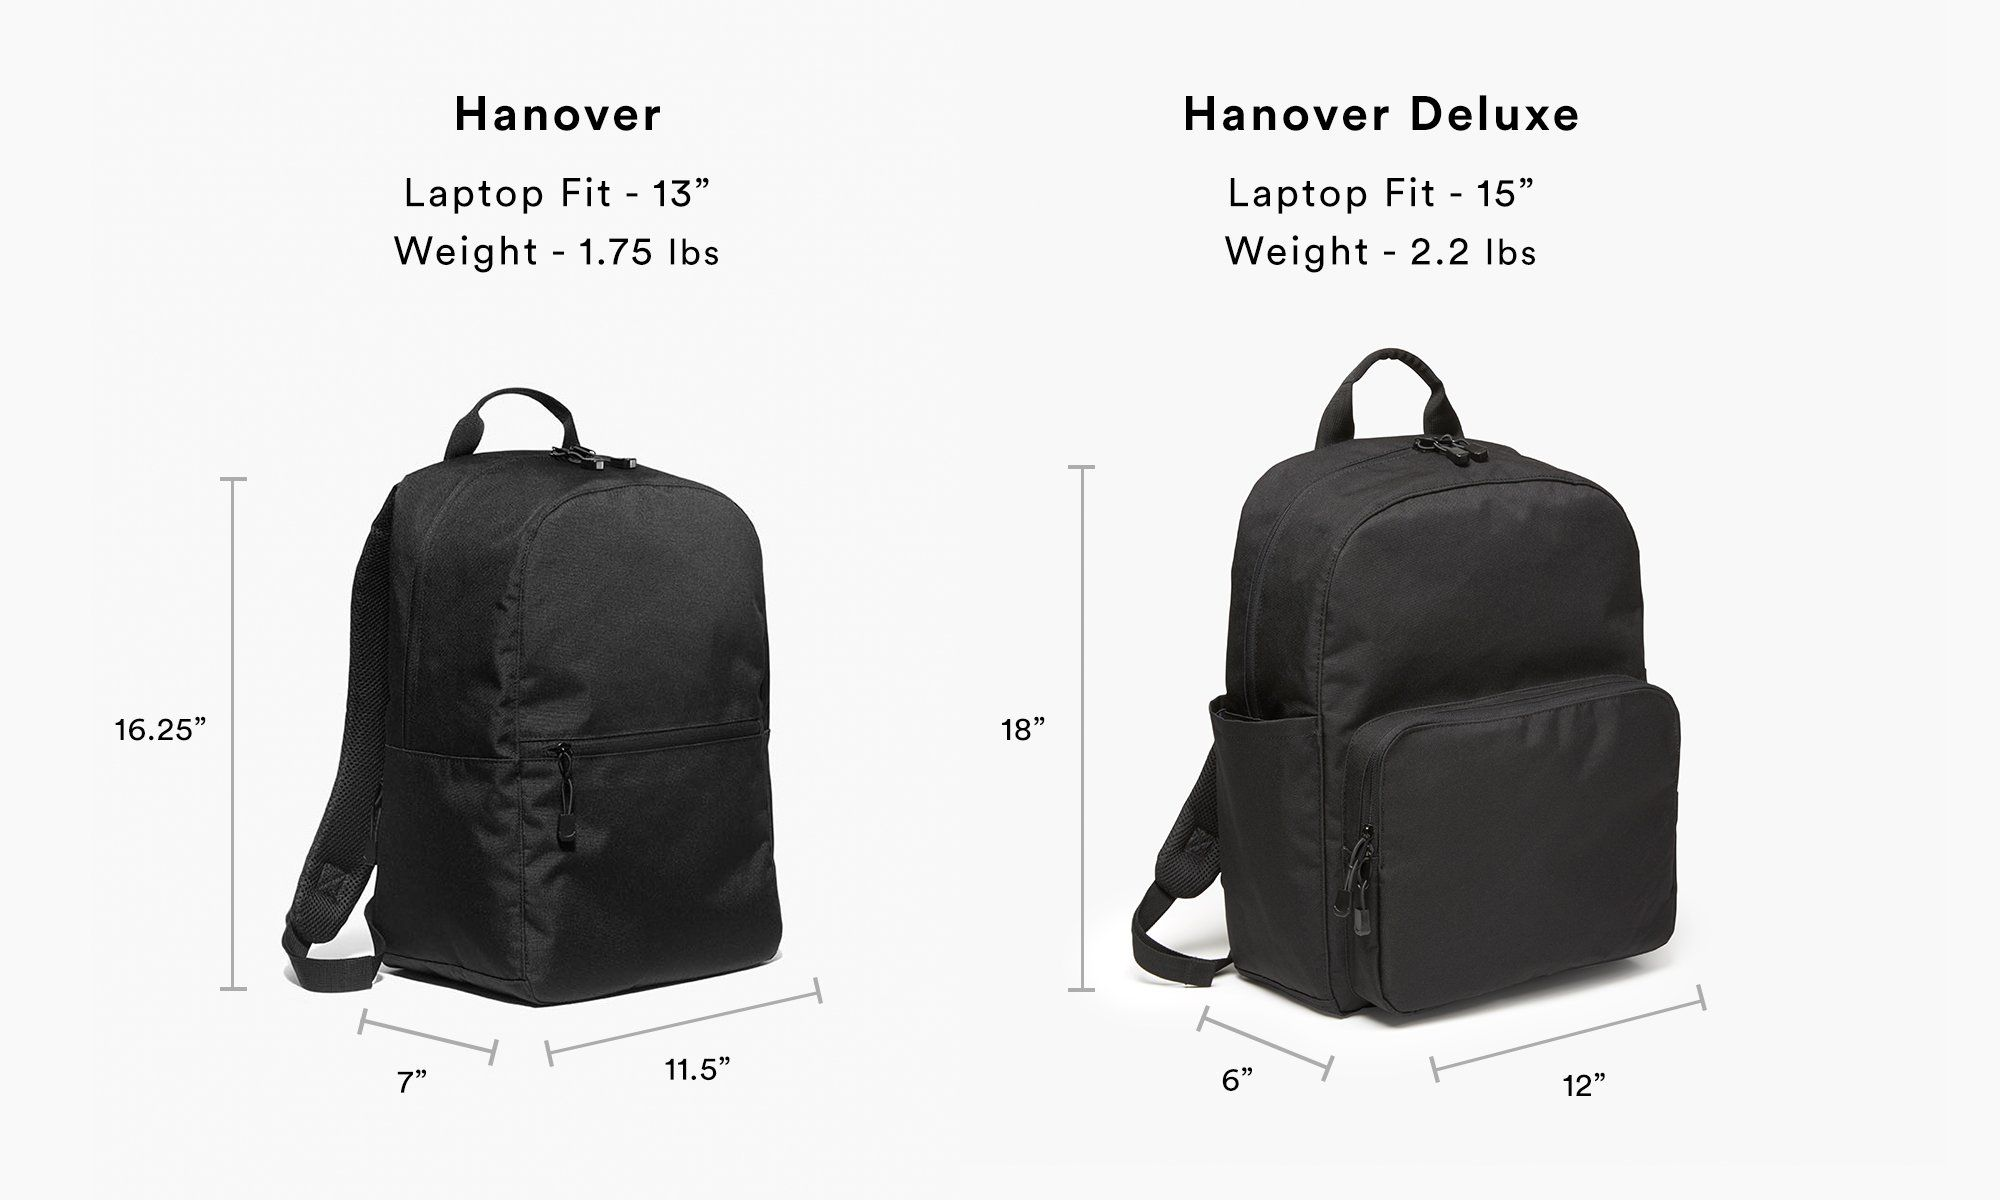 545f7d9d5d90f Lightweight Travel Backpack for Men & Women - The Hanover Deluxe – Lo & Sons